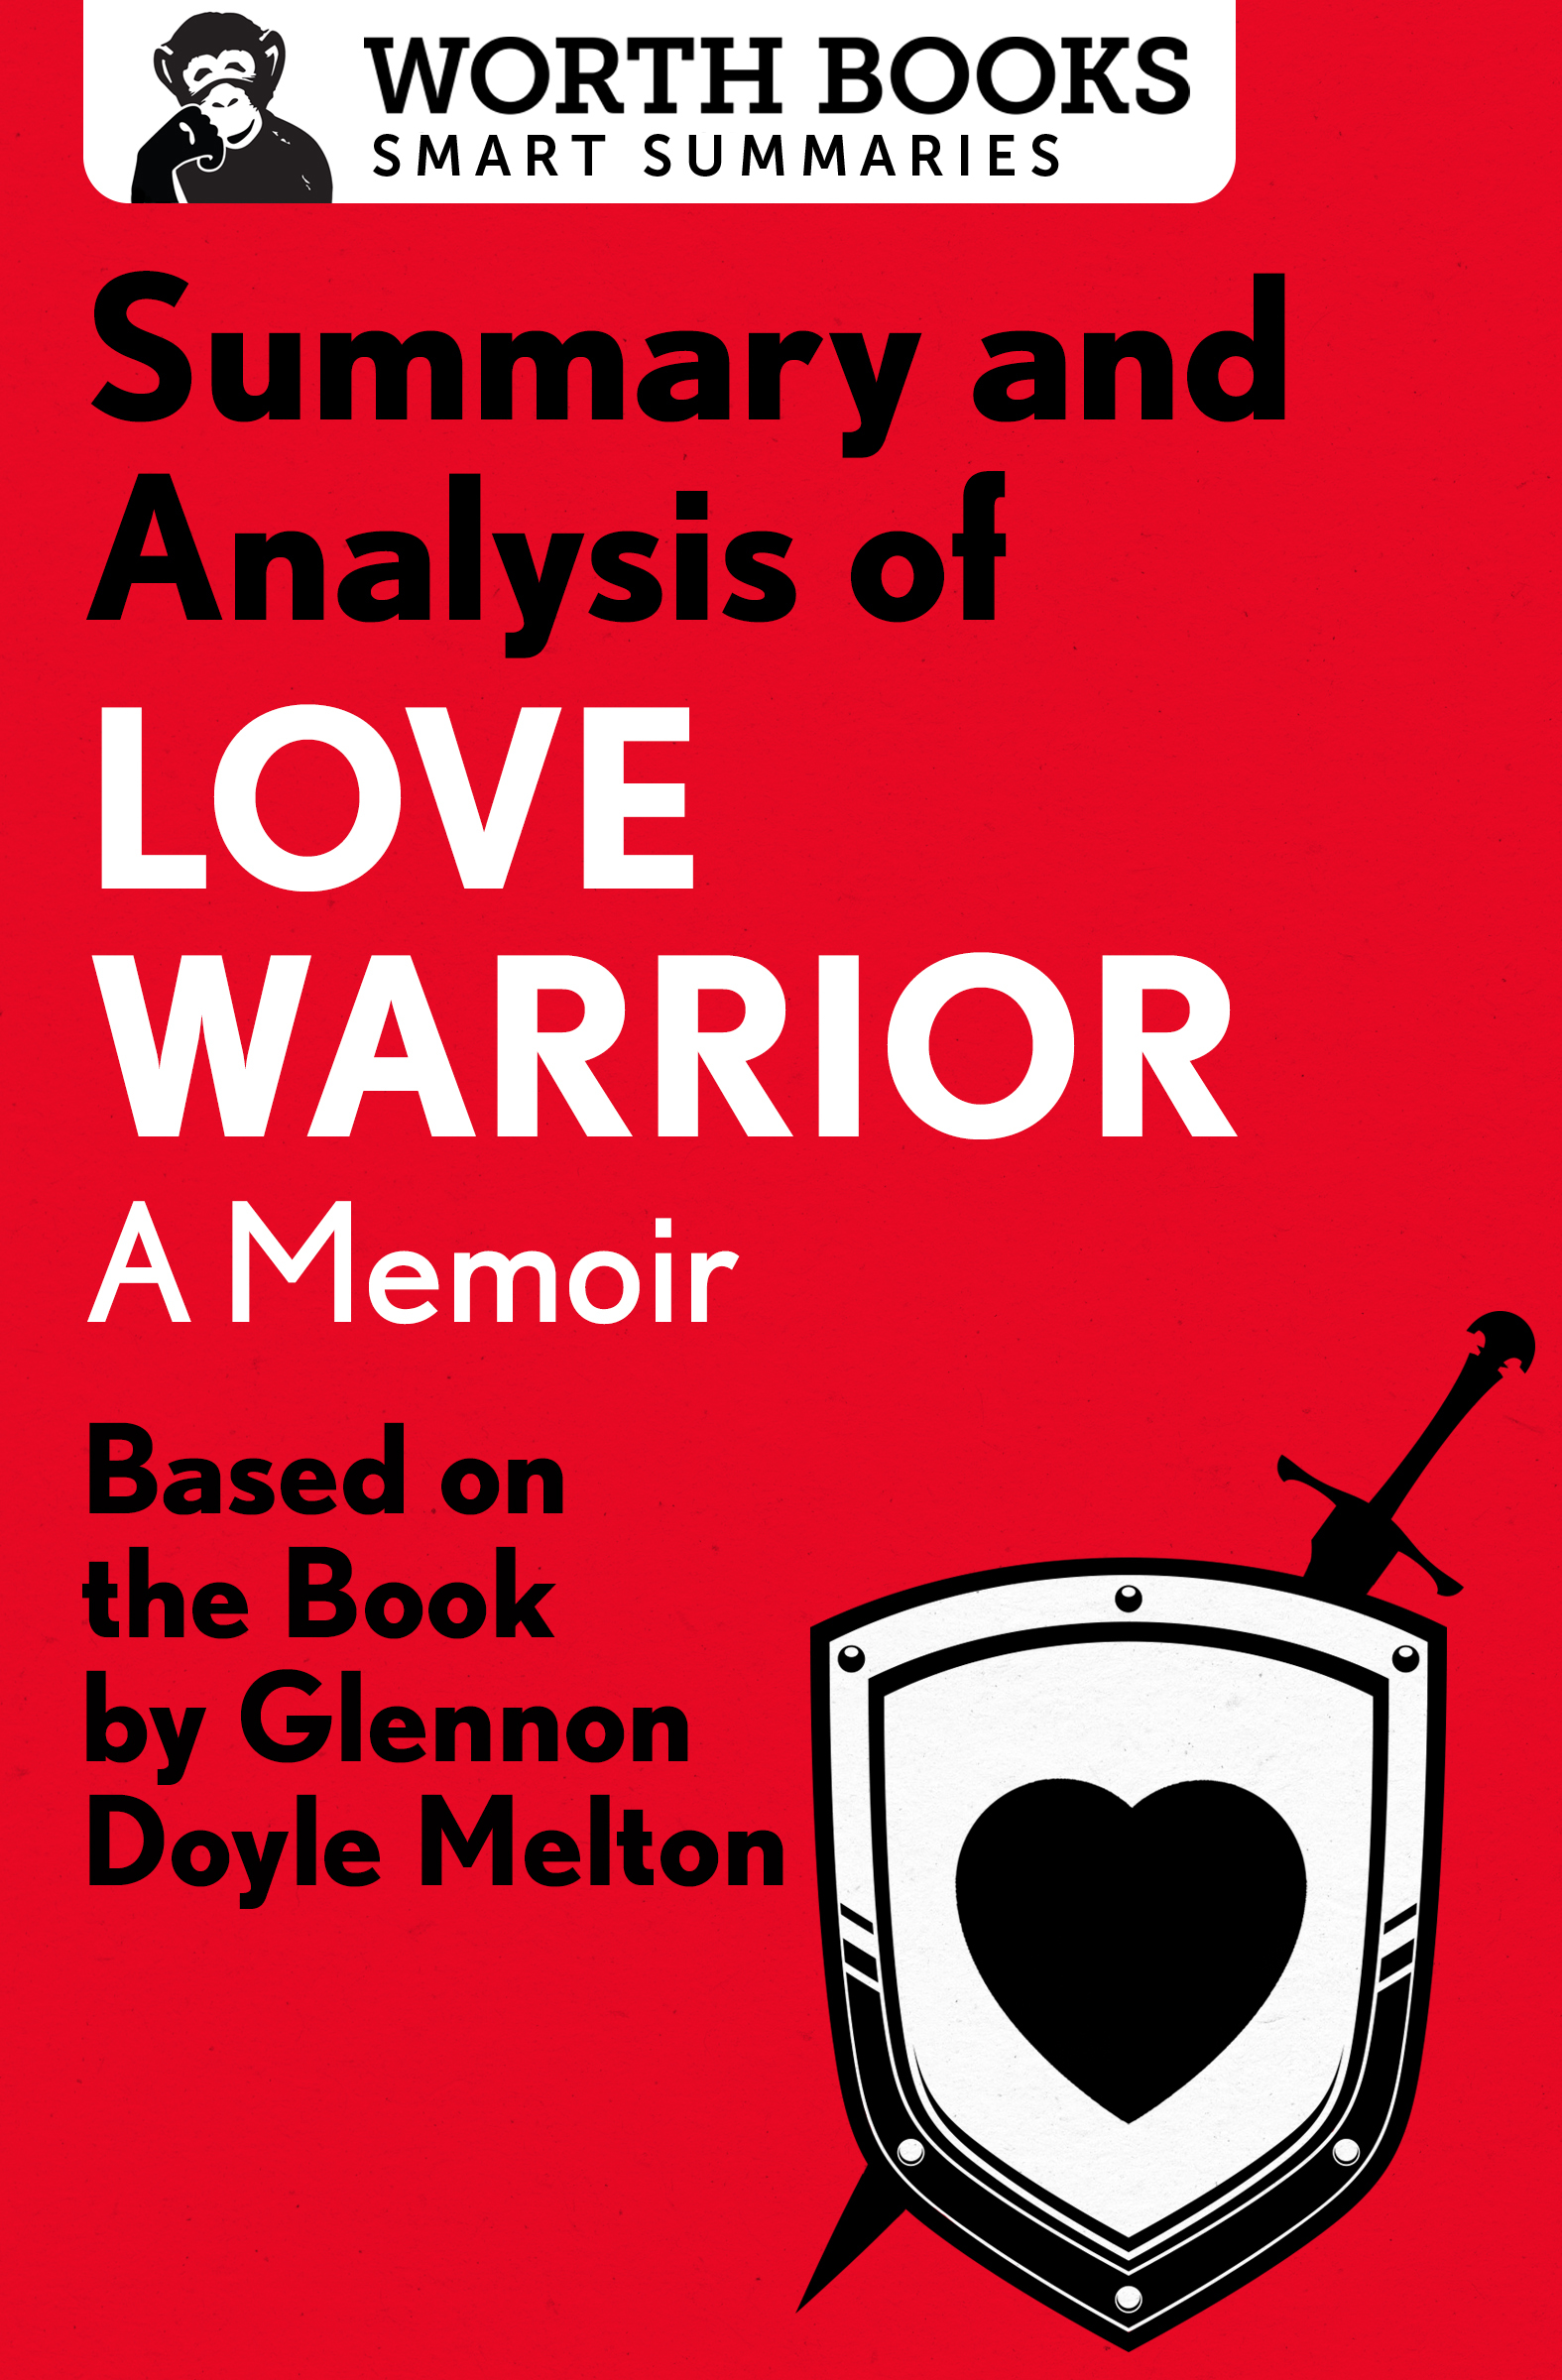 Summary and Analysis of Love Warrior: A Memoir: Based on the Book by Glennon Doyle Melton